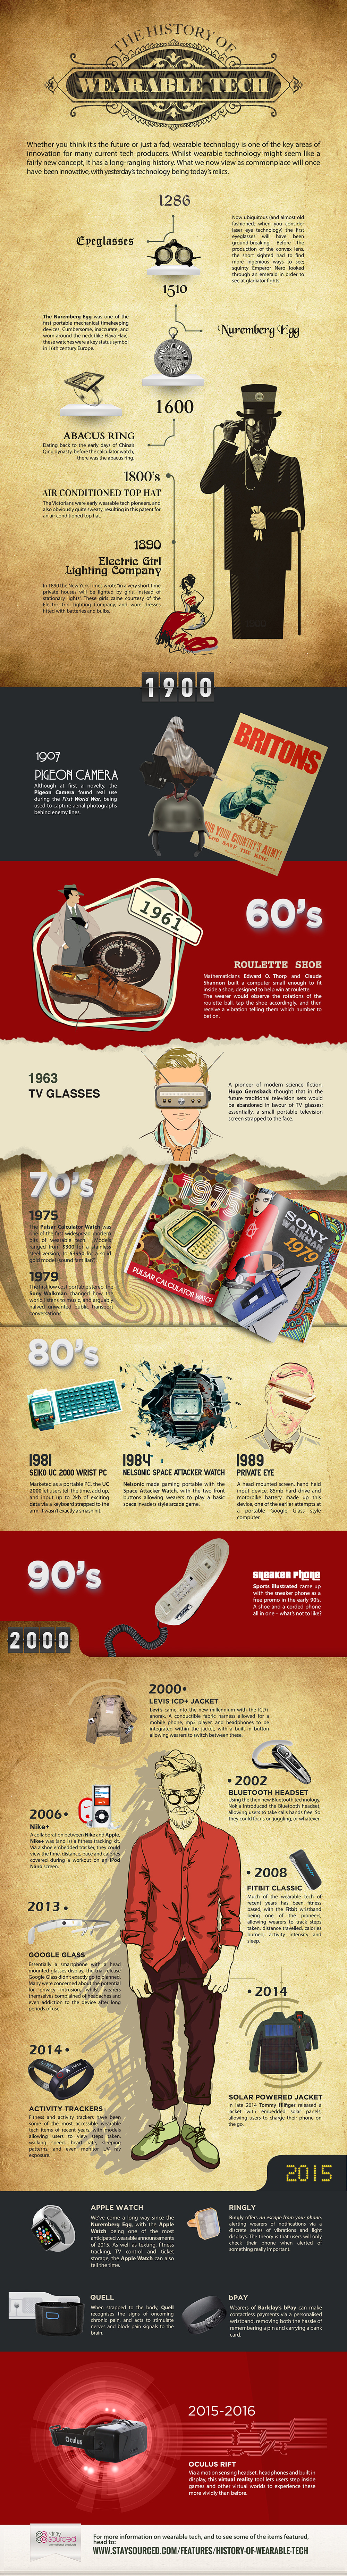 Wearable Tech History Infographic